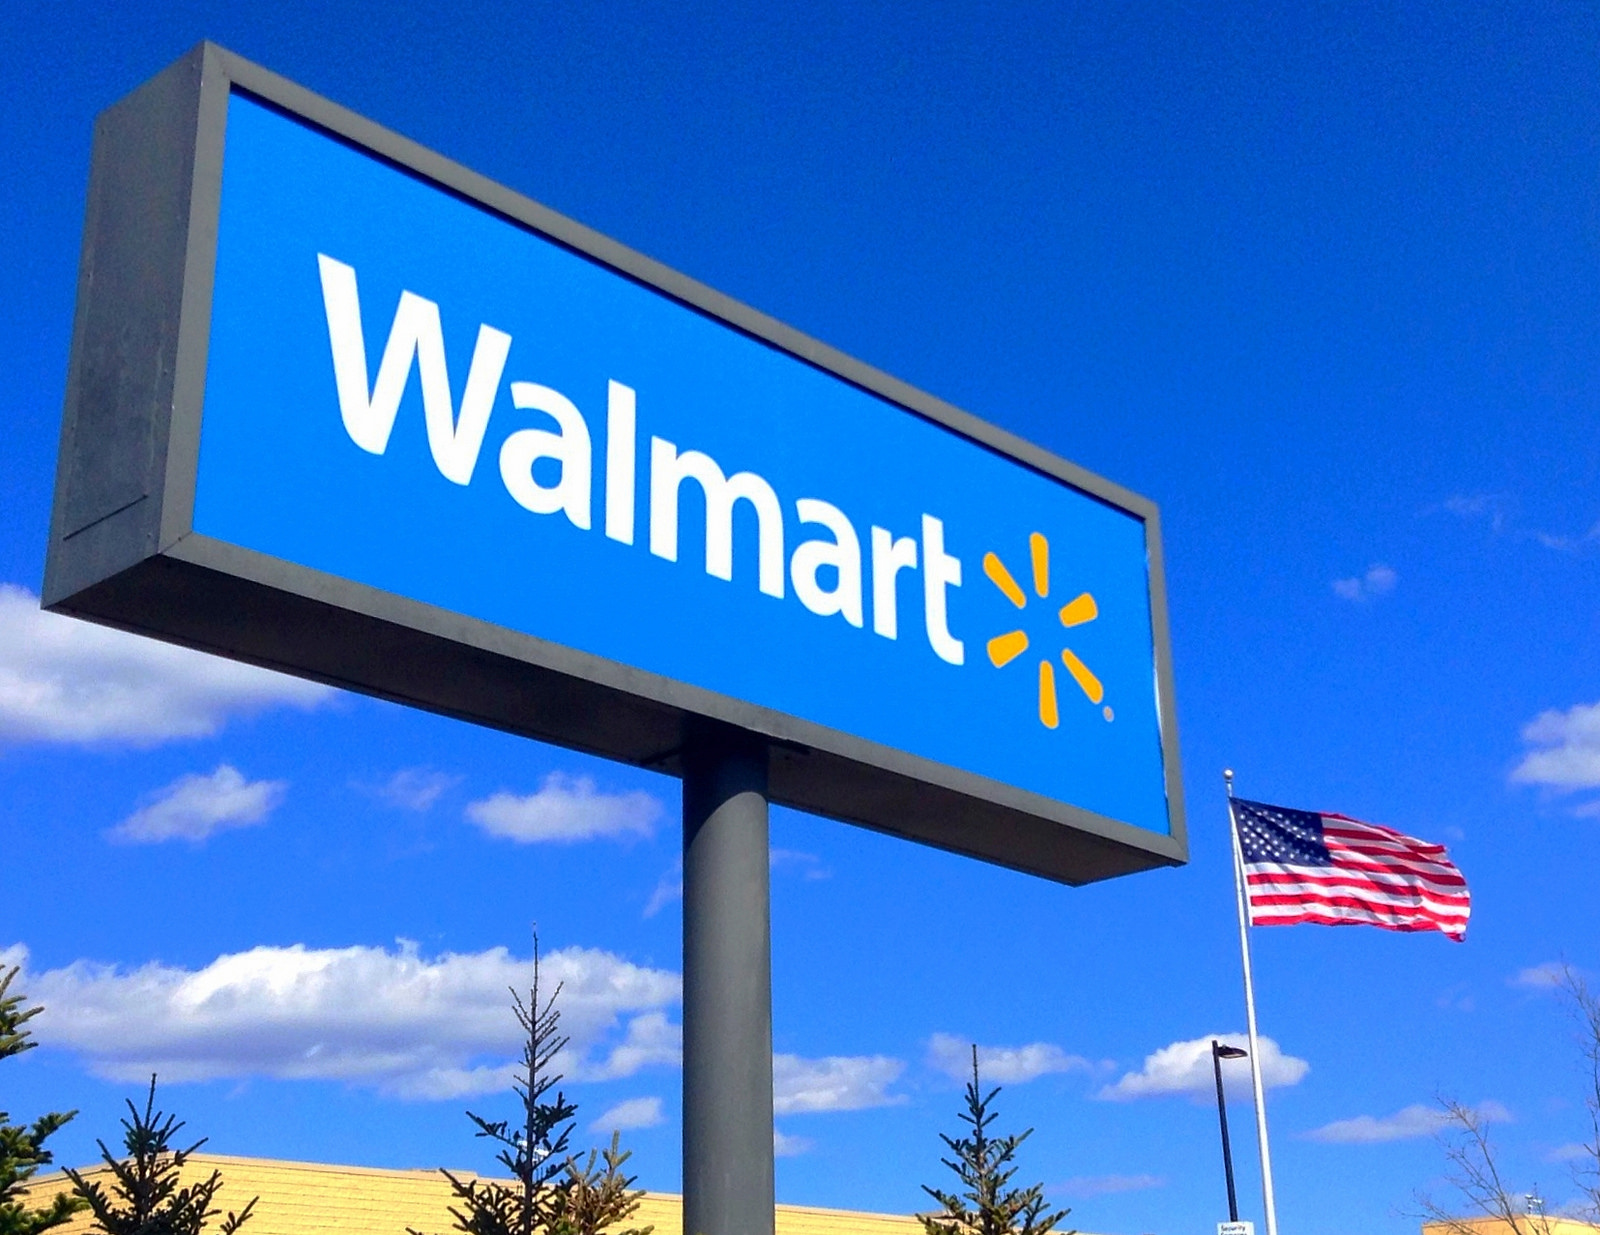 13753807413_62a8e28129_h - When Does Walmart Open On Christmas Day